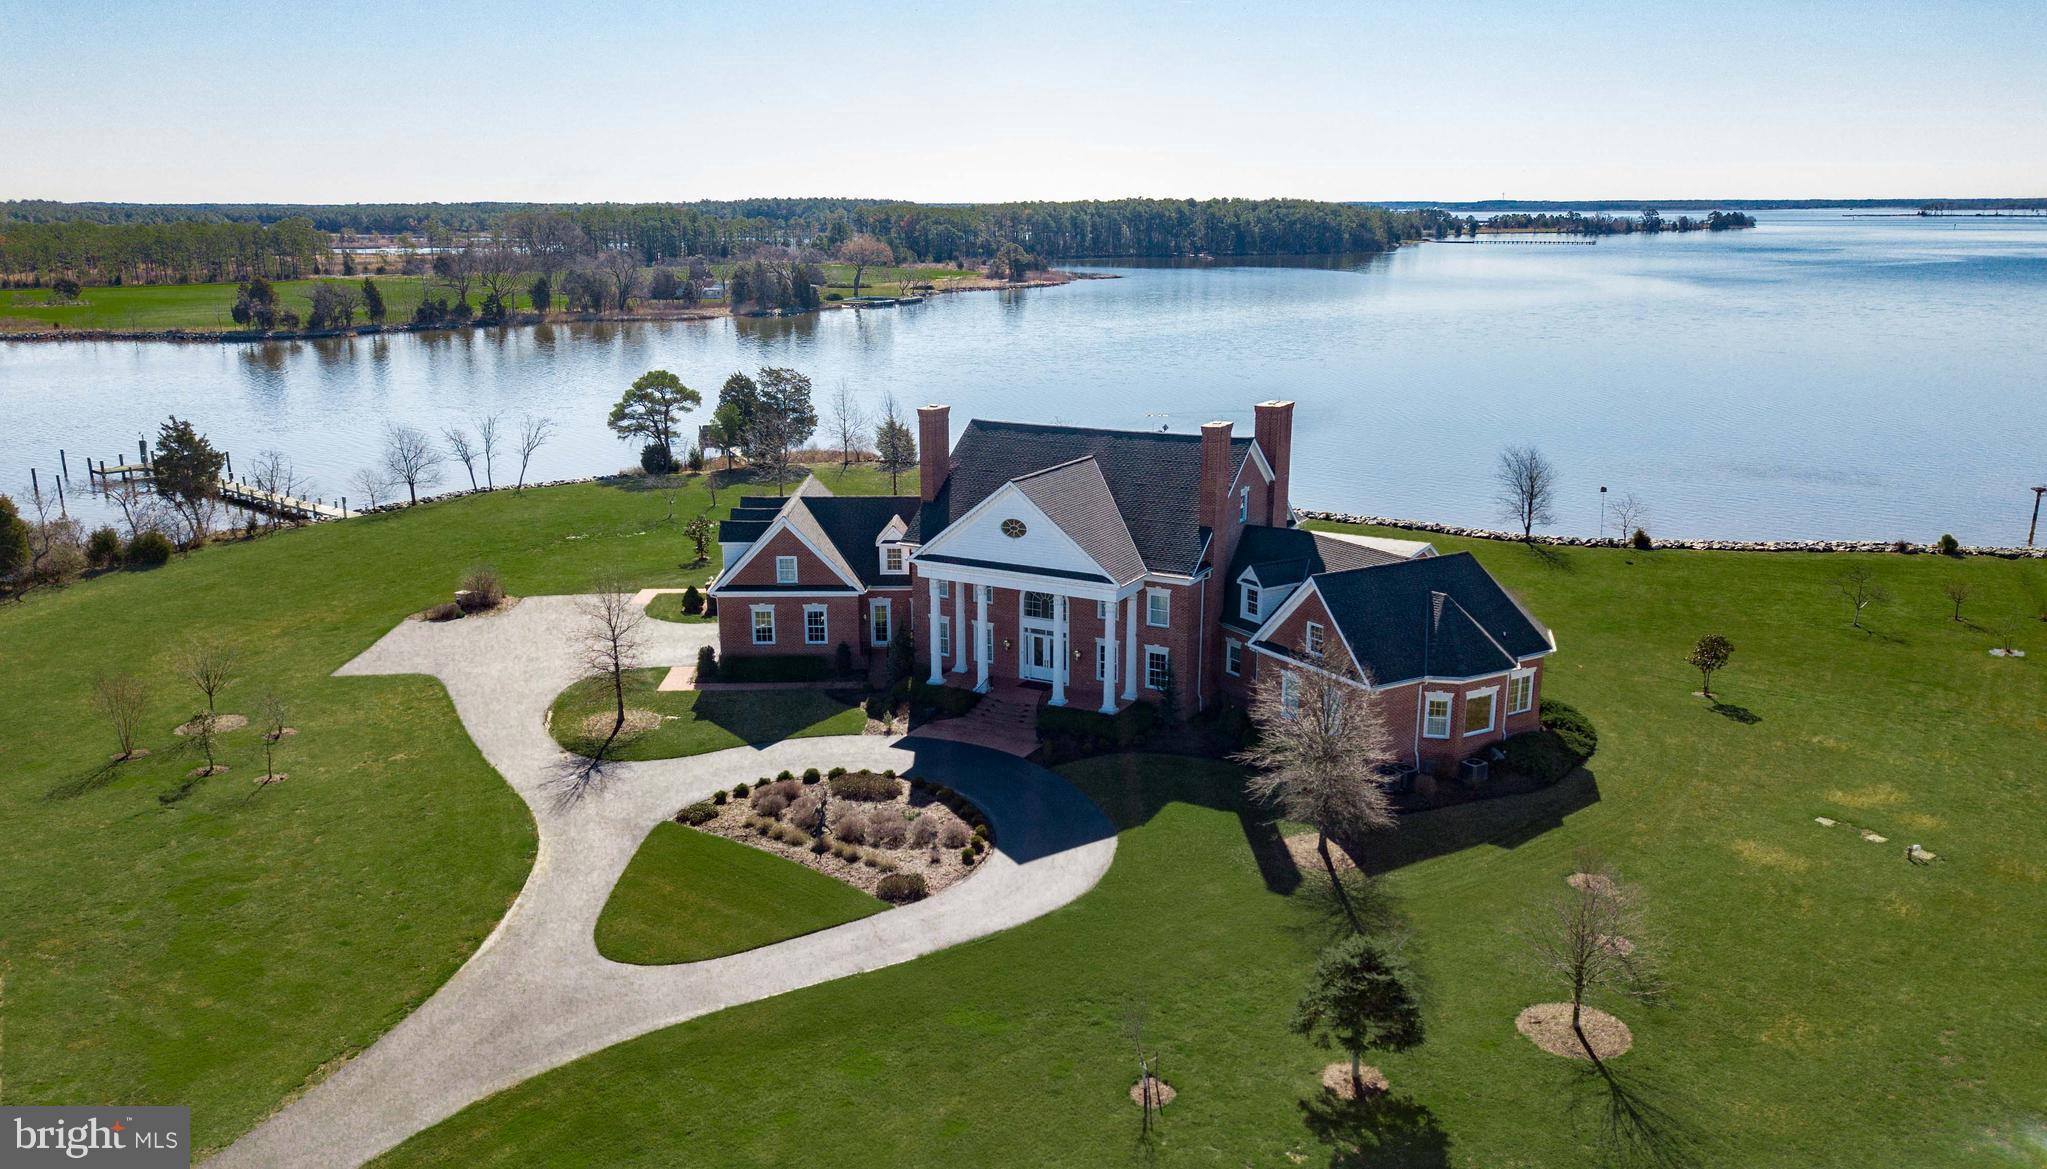 """SOUTHWIND"" A FABULOUS GATED WATERFRONT ESTATE on Maryland's Eastern Shore sits on 214 +/- acres with 2.5+/- miles of waterfront on Hudson Creek. This property features a stunning custom 5 BR brick manor house, 5 BR guest house, barn, workshop, 4 ponds, 2 docks, waterfowl blinds and deer stands. Total of 5 parcels including sweeping lawns, gardens, meadows, farmland, wetlands, and wooded acreage."